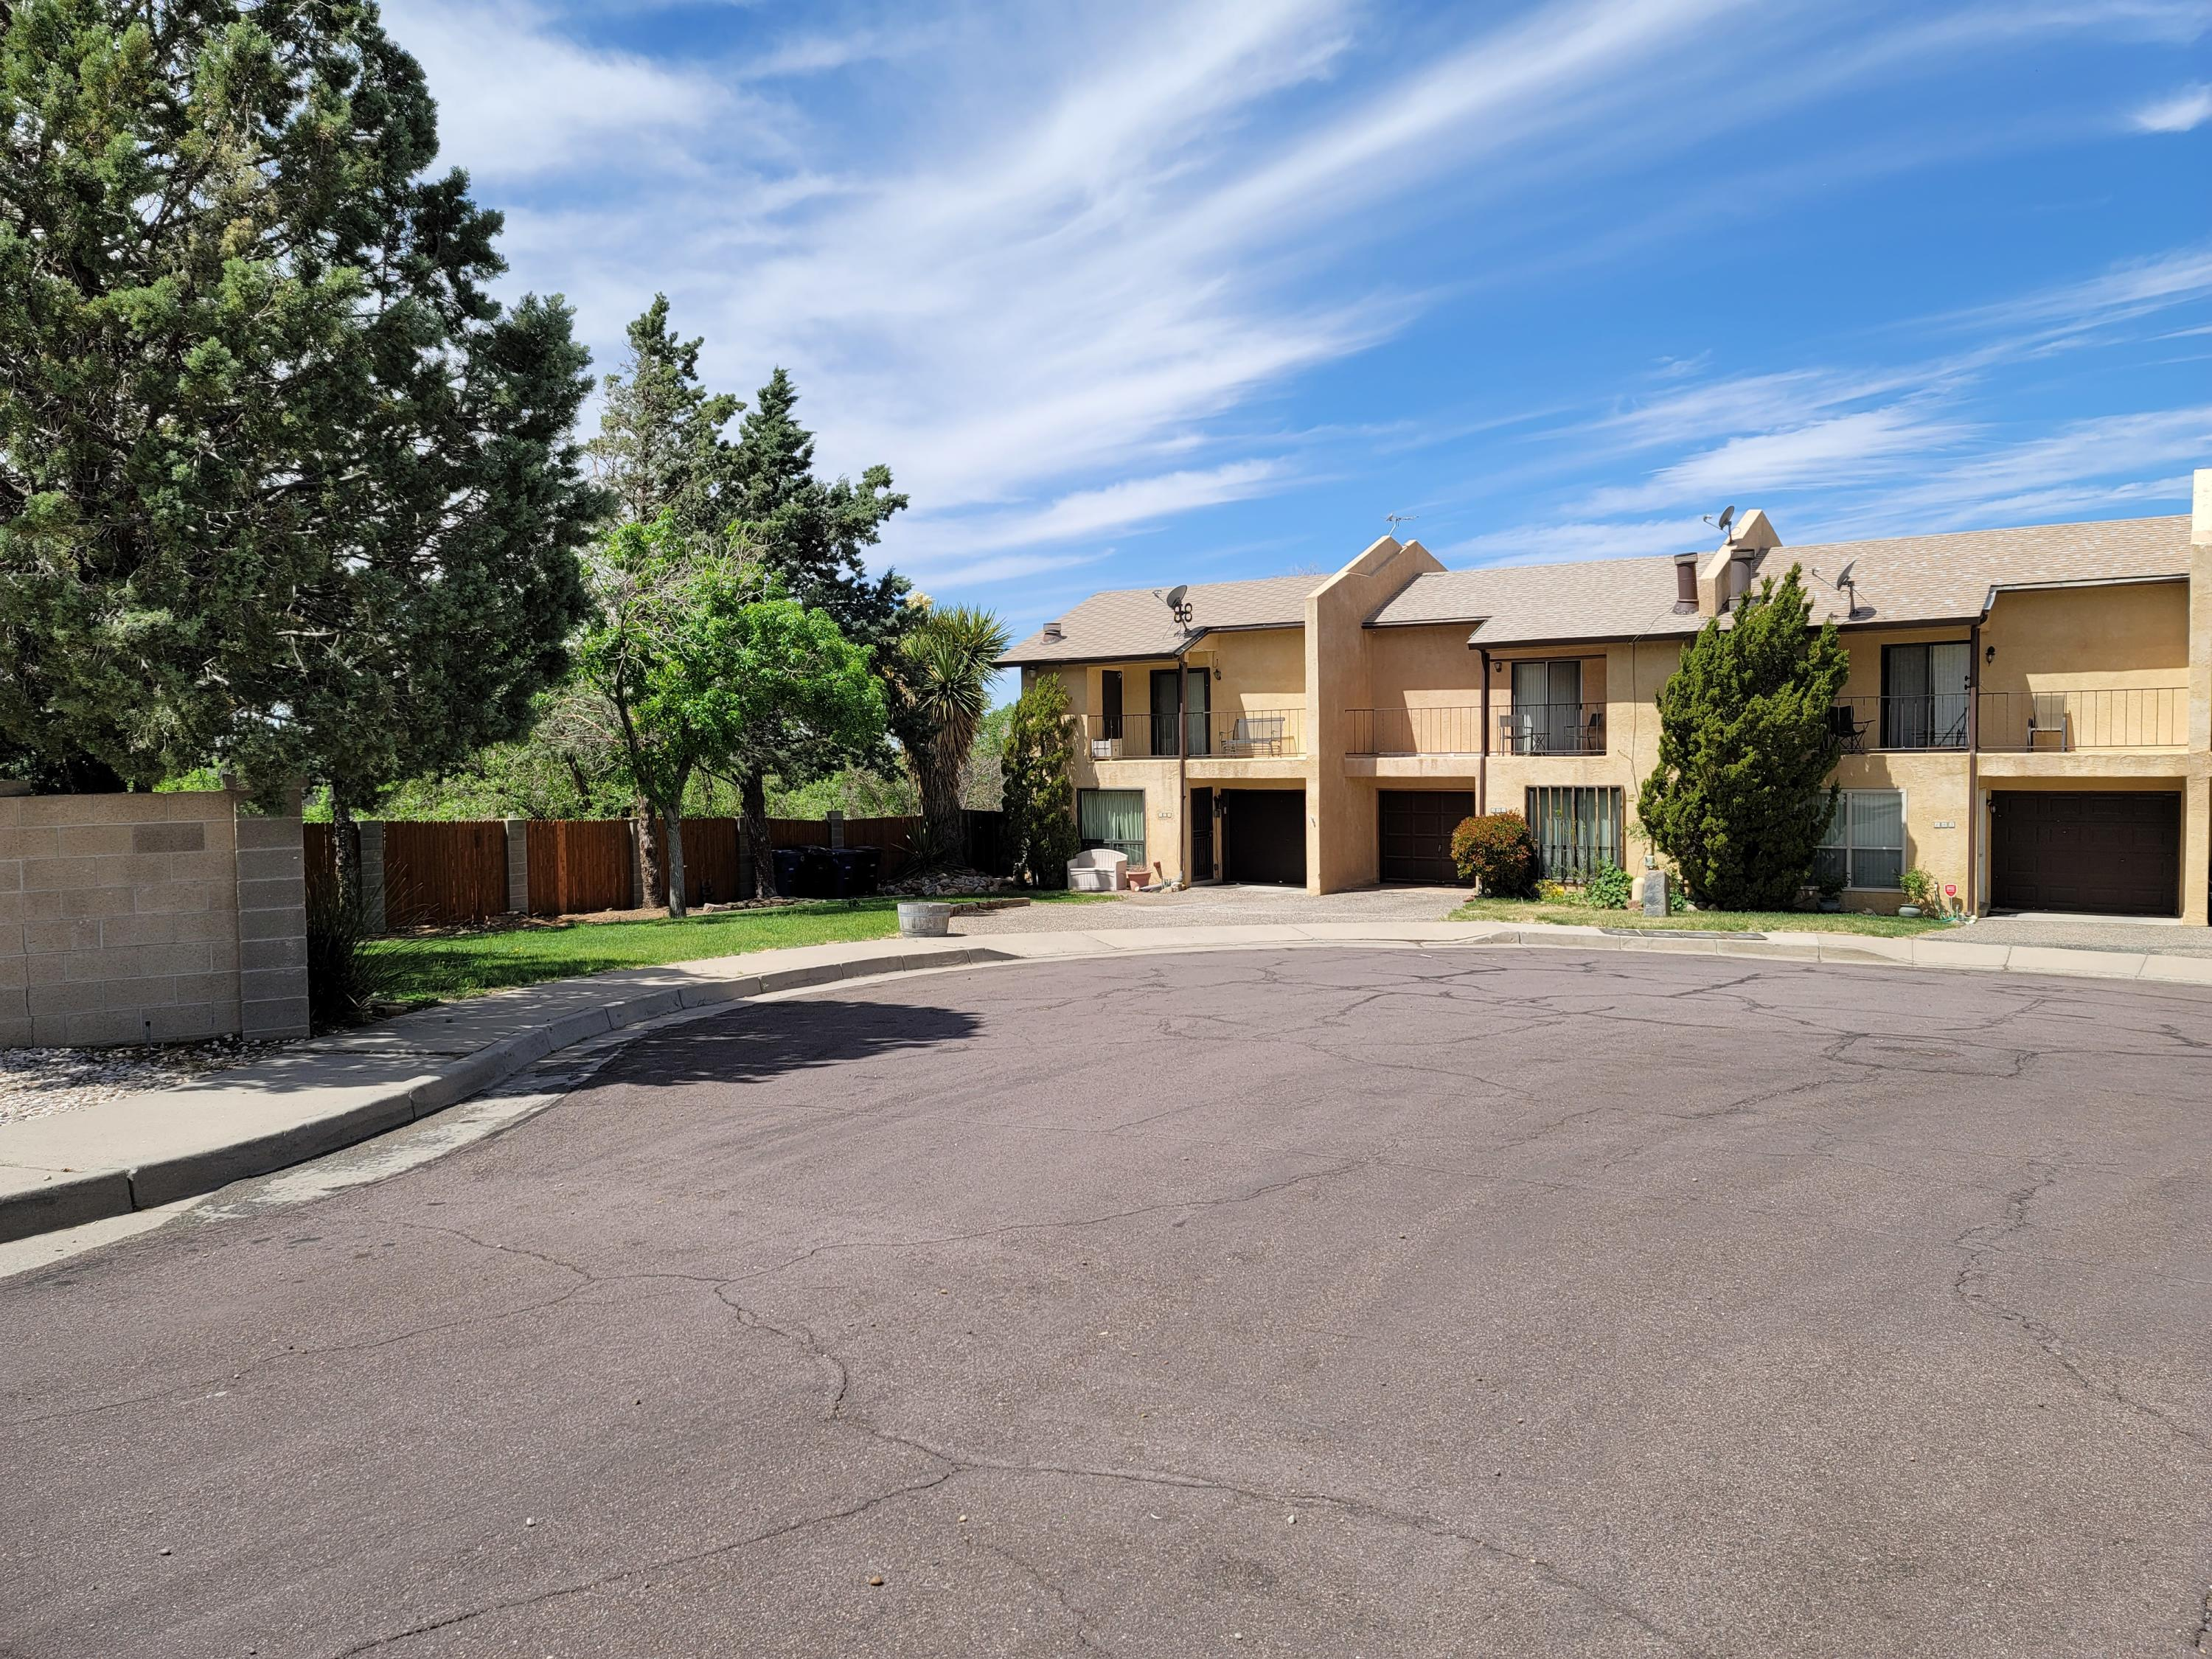 Darling 2 BEDROOM Townhome in the desirable Foothills. Just a hop & skip to I-40. Enjoy the biking / walking trail on Tramway or go for a hike in the foothills.  Conveniently located near Sprouts, Smiths, Movie Theatre and Shopping Center.  Home has Romantic wood-burning fireplace in the corner of the living room for those chilly winter nights. Sip your morning coffee or relax after work on a cool summer evening on either your east or west balcony.  Balconies are off of the 2 upstairs bedrooms.  Low maintenance yards ideal for the busy person.  Please use covid safety practices & wear a mask.